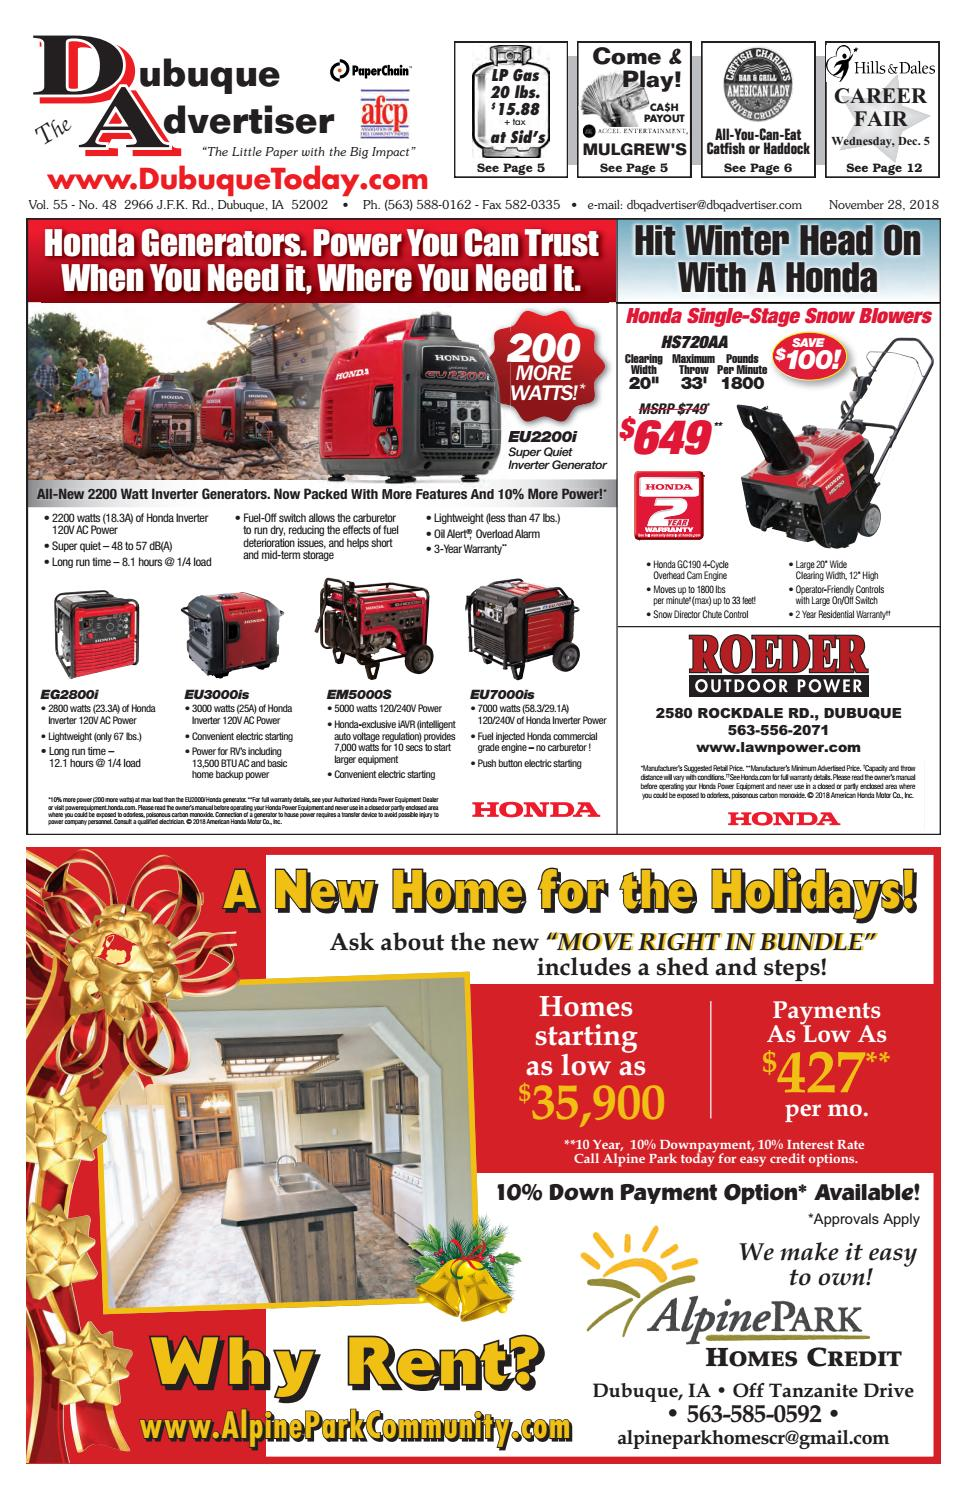 medium resolution of the dubuque advertiser november 28 2018 by the dubuque advertiser issuu